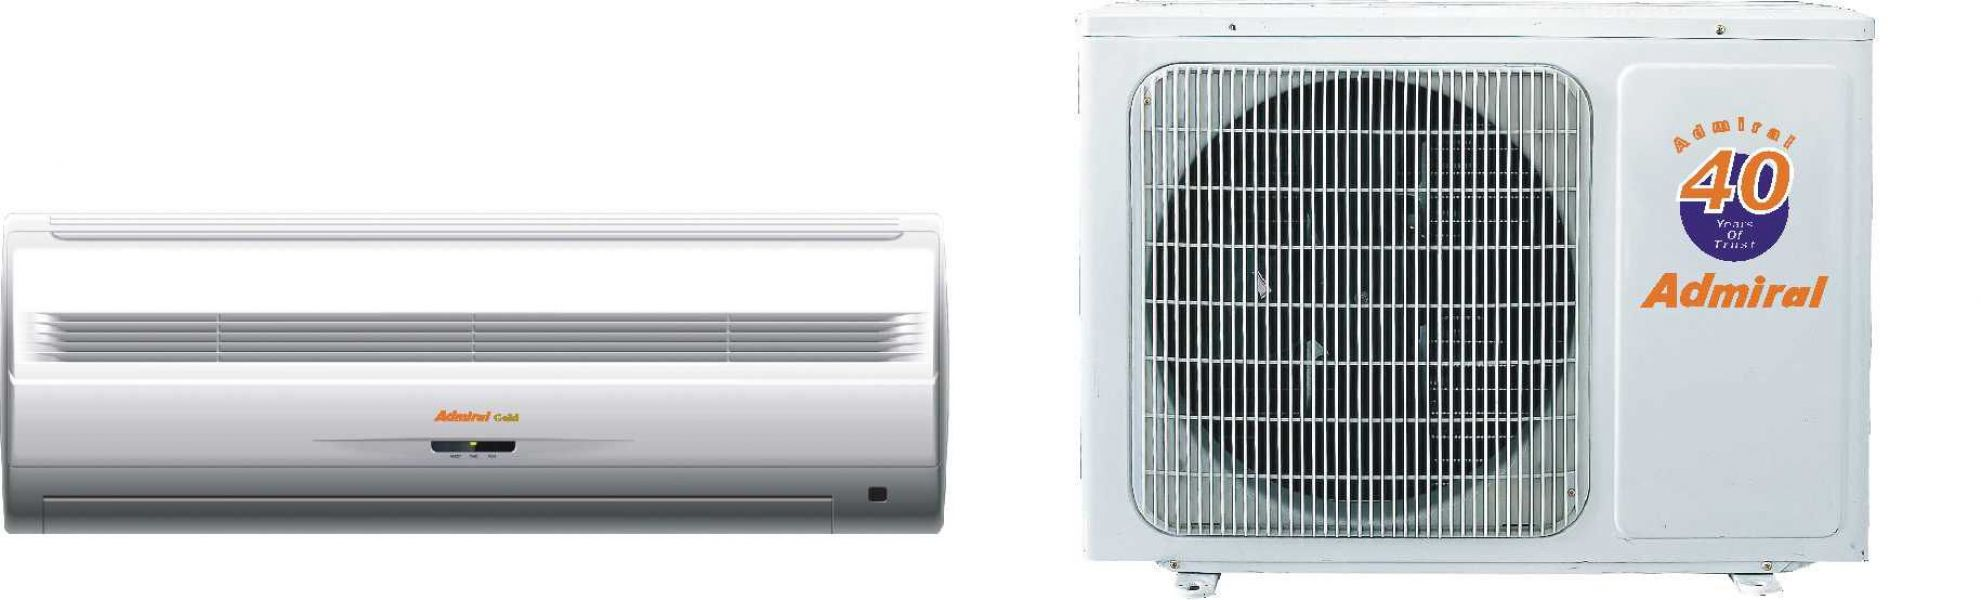 07801295368 HVAC Air-Conditioning Maintenance In Jasmine Court